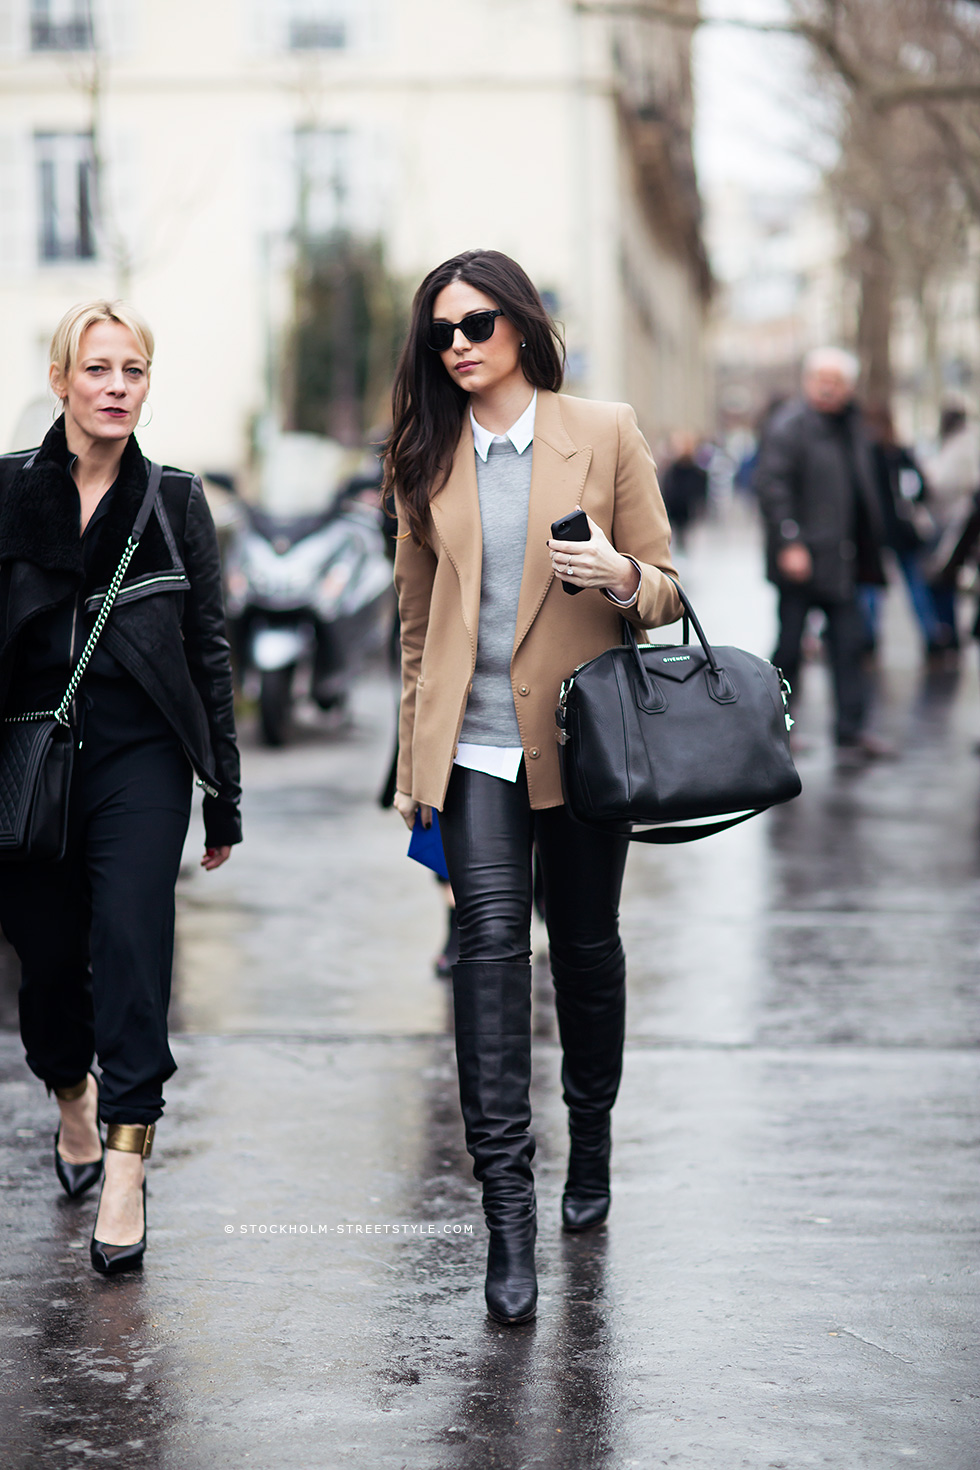 In The Moment   Carolines Mode Stockholm Street Style   Pinterest Picks - Winter Layers